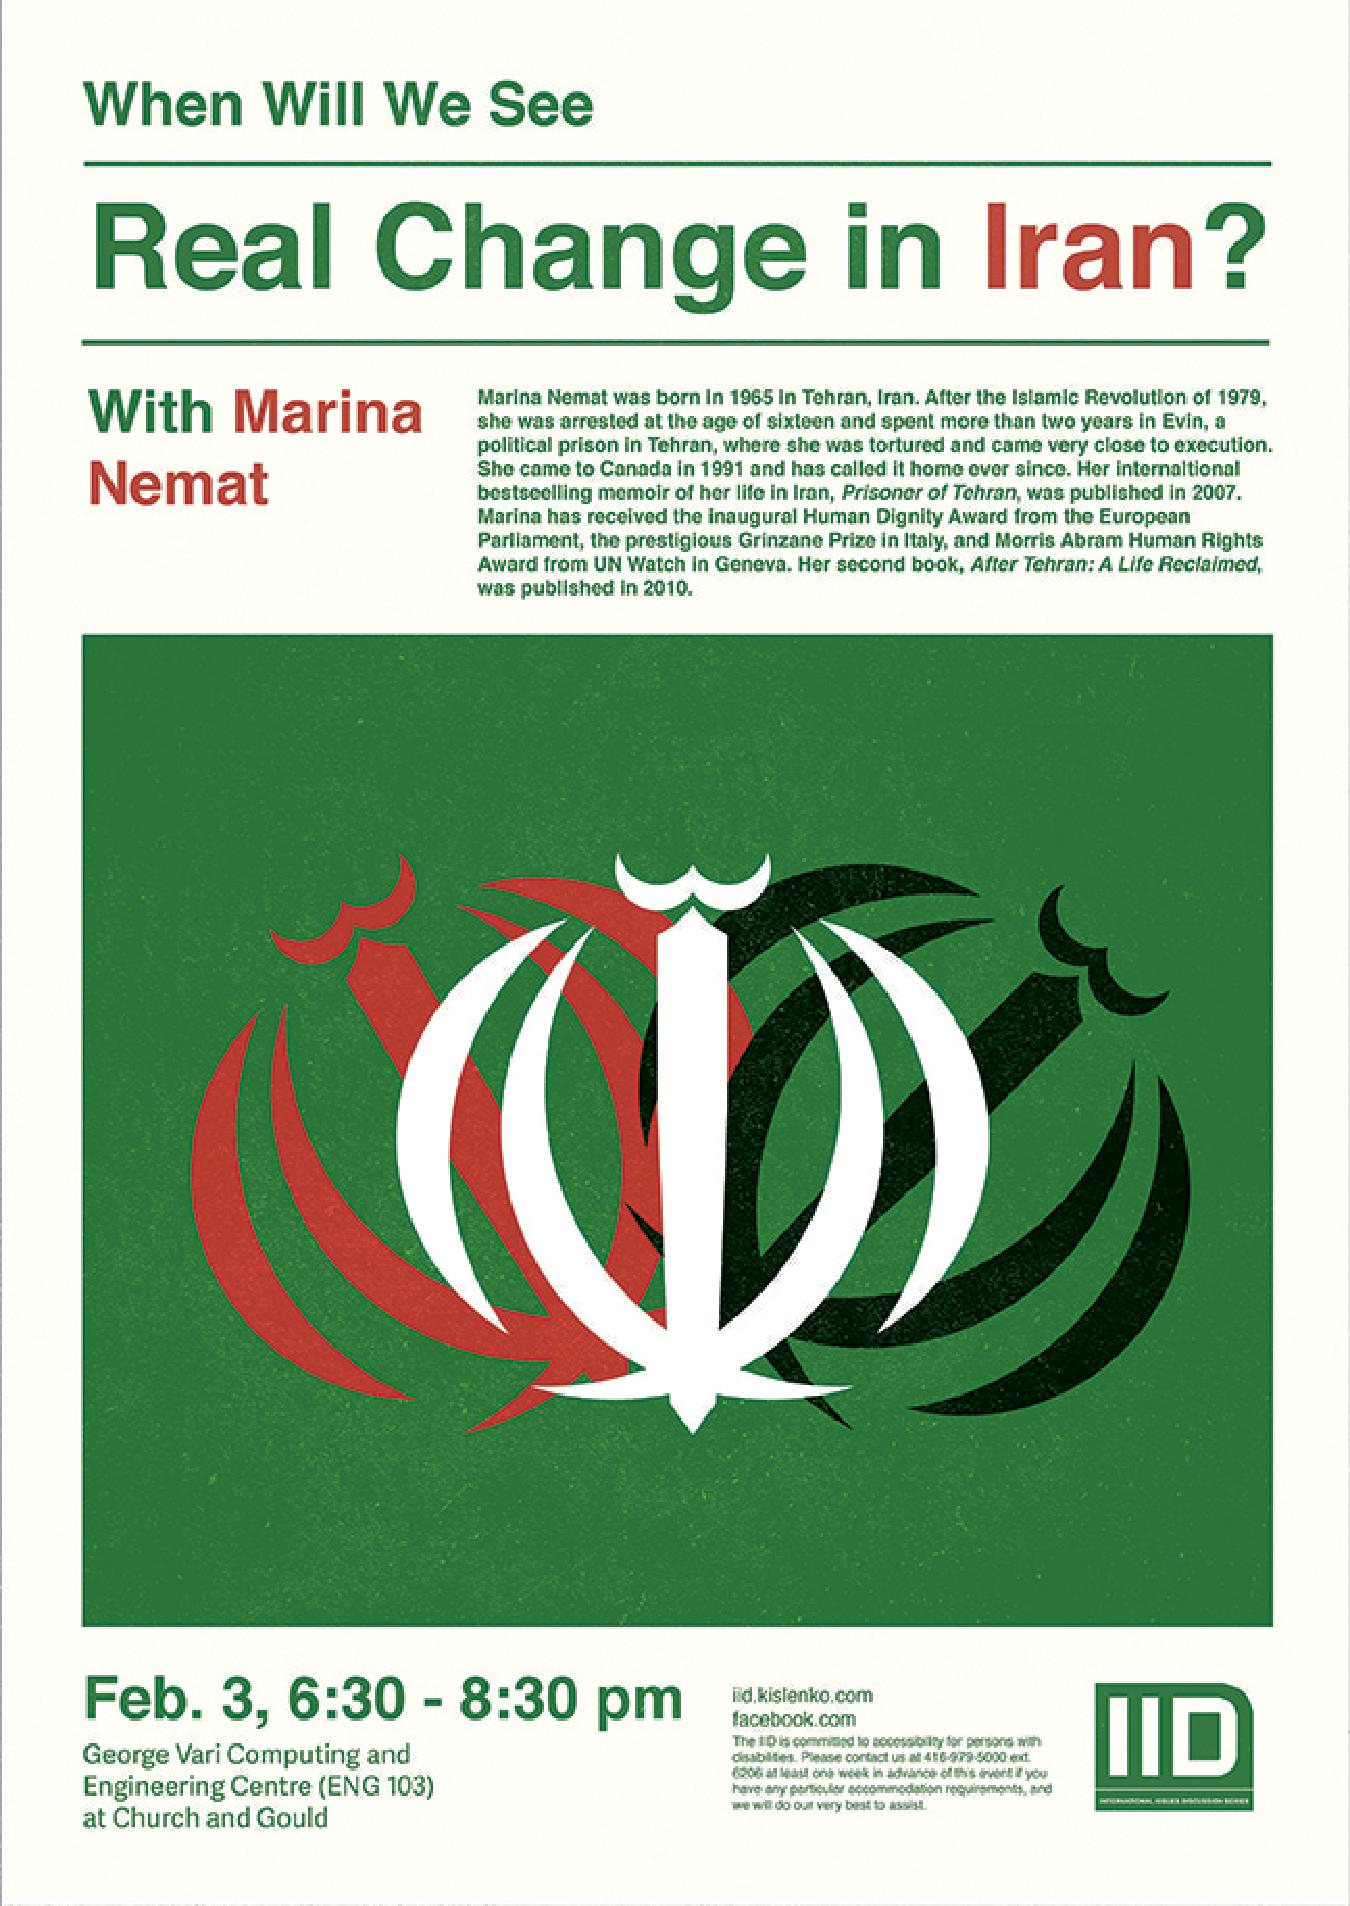 When Will We See Real Change in Iran? With Marina Nemat, Wednesday, Feb. 3, 2016.